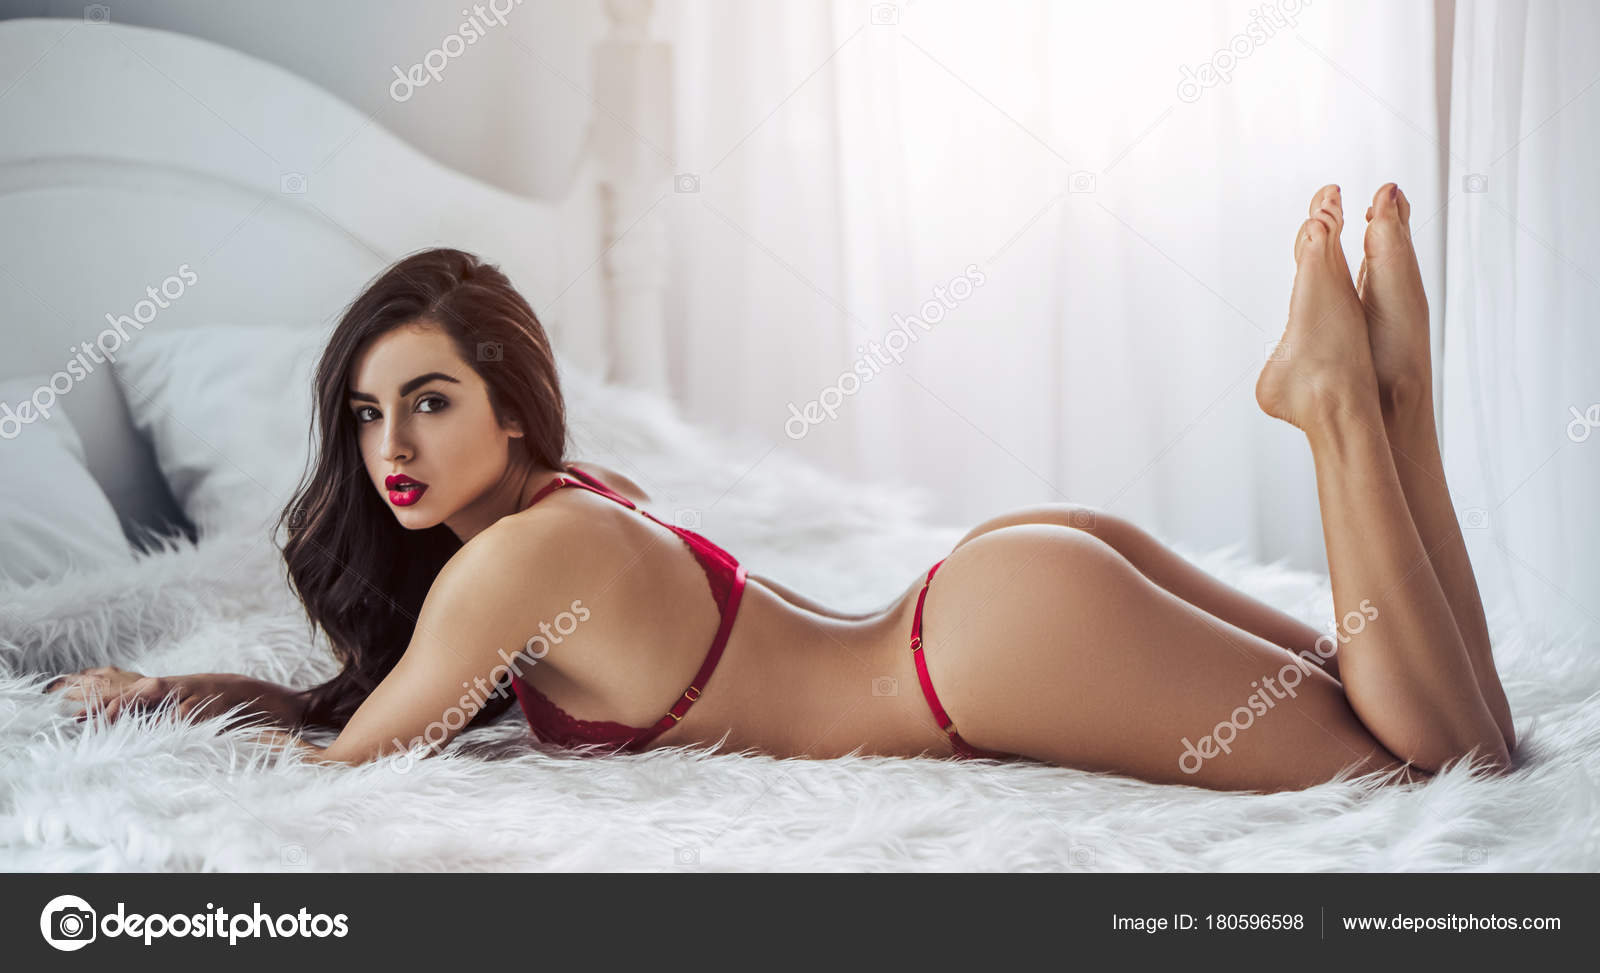 Sexy Woman In Bed Stock Photo C 4pmphoto Gmail Com 180596598